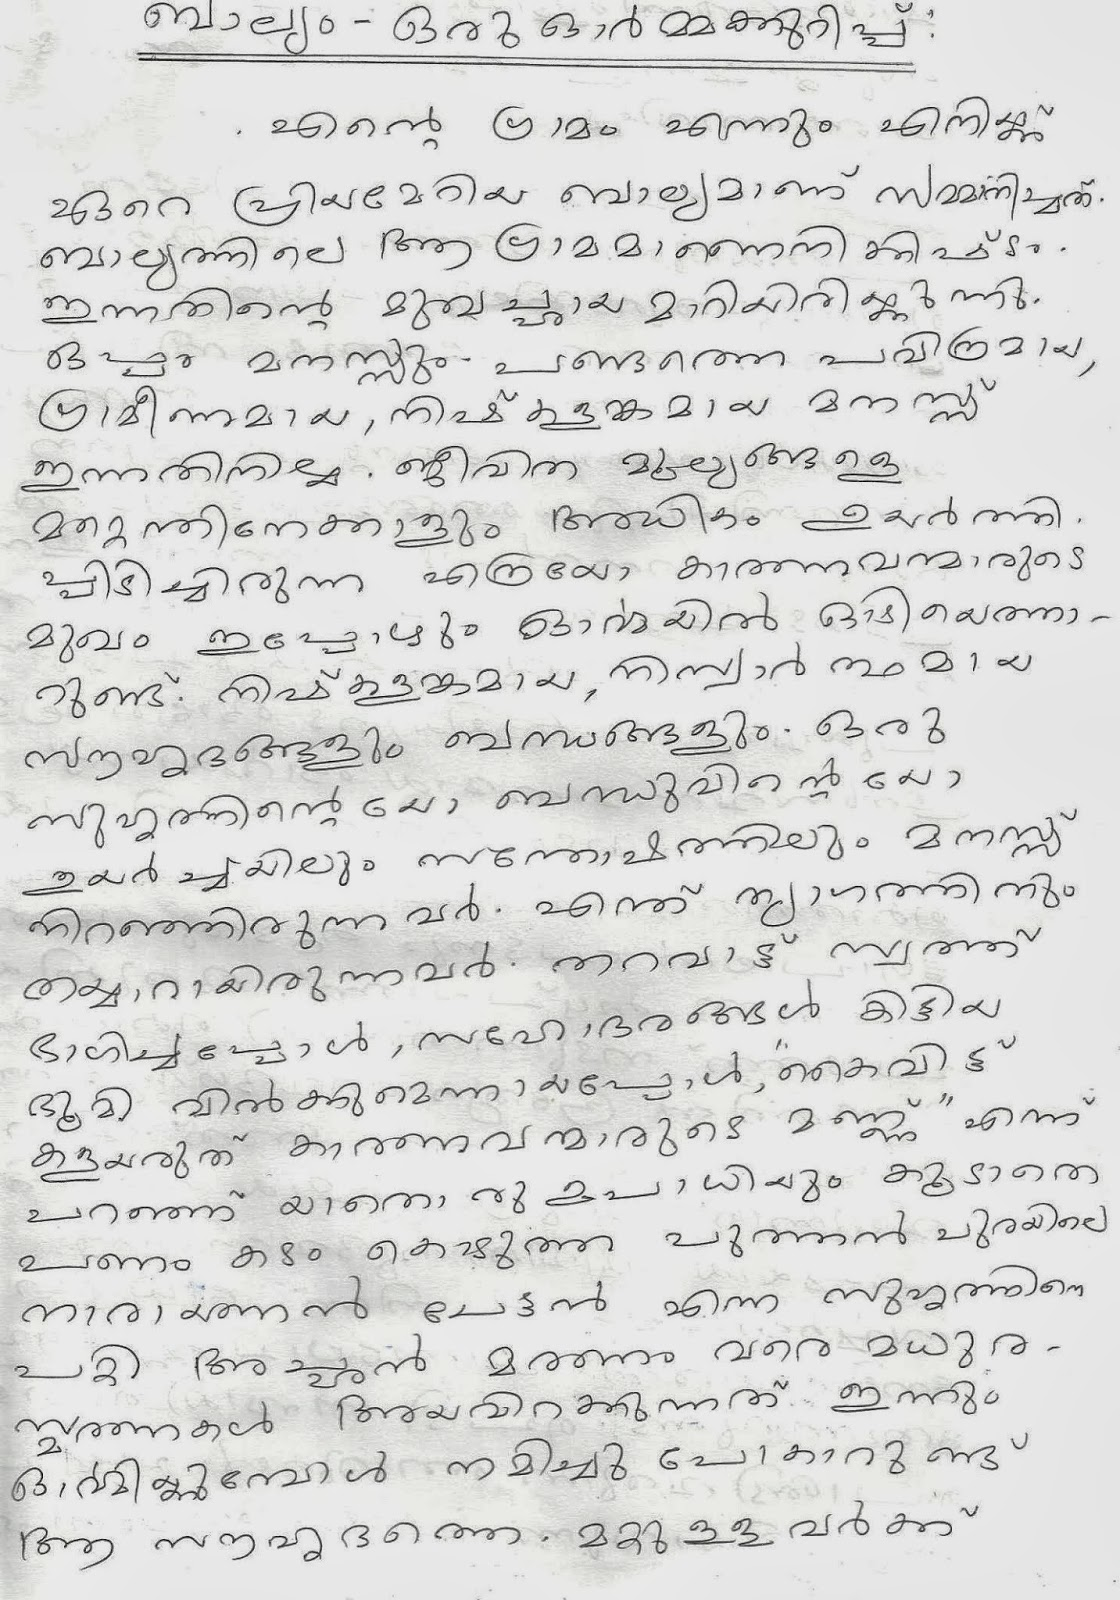 childhood memories essay in malayalam my thoughts and my hd image of my thoughts and my literary world kerala village childhood memories